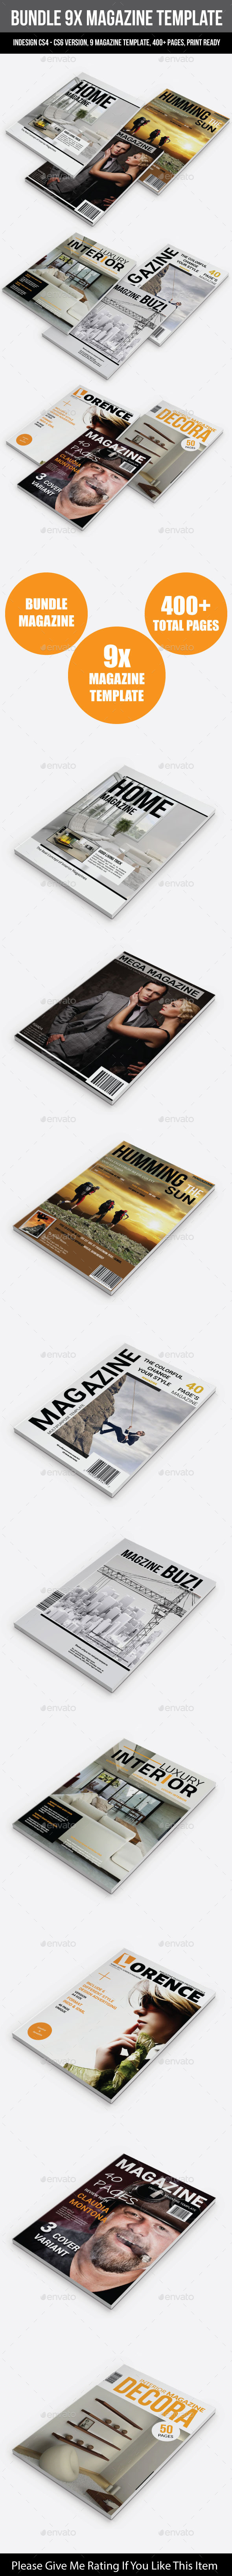 GraphicRiver Bundle 9X Magazine Template 8977892